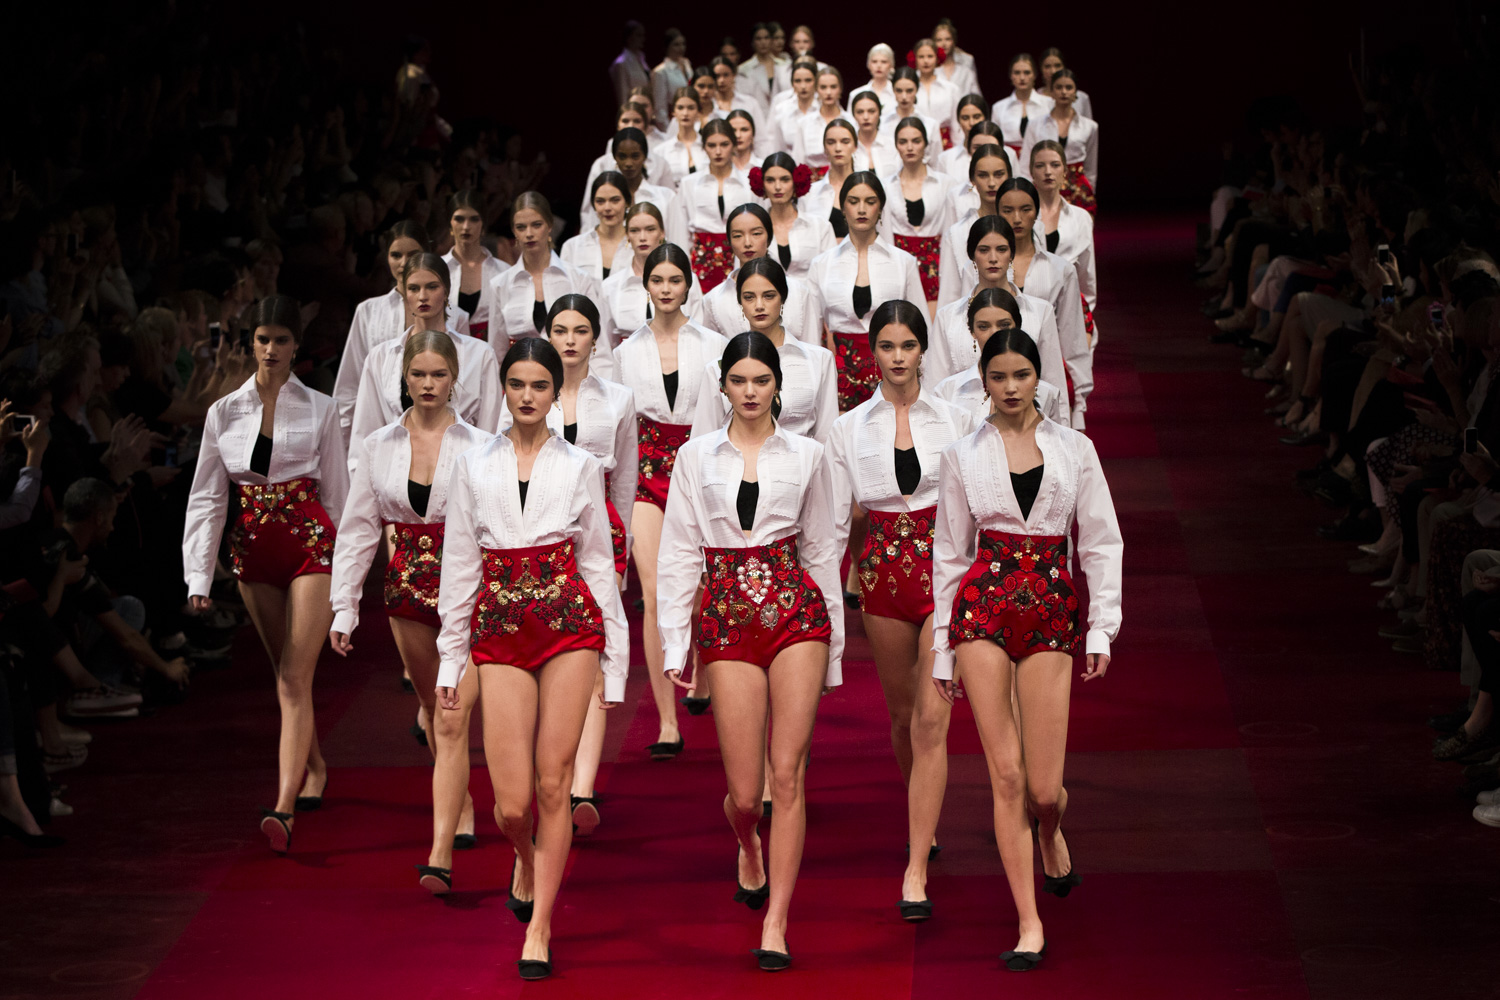 DOLCE AND GABBANA FINALE